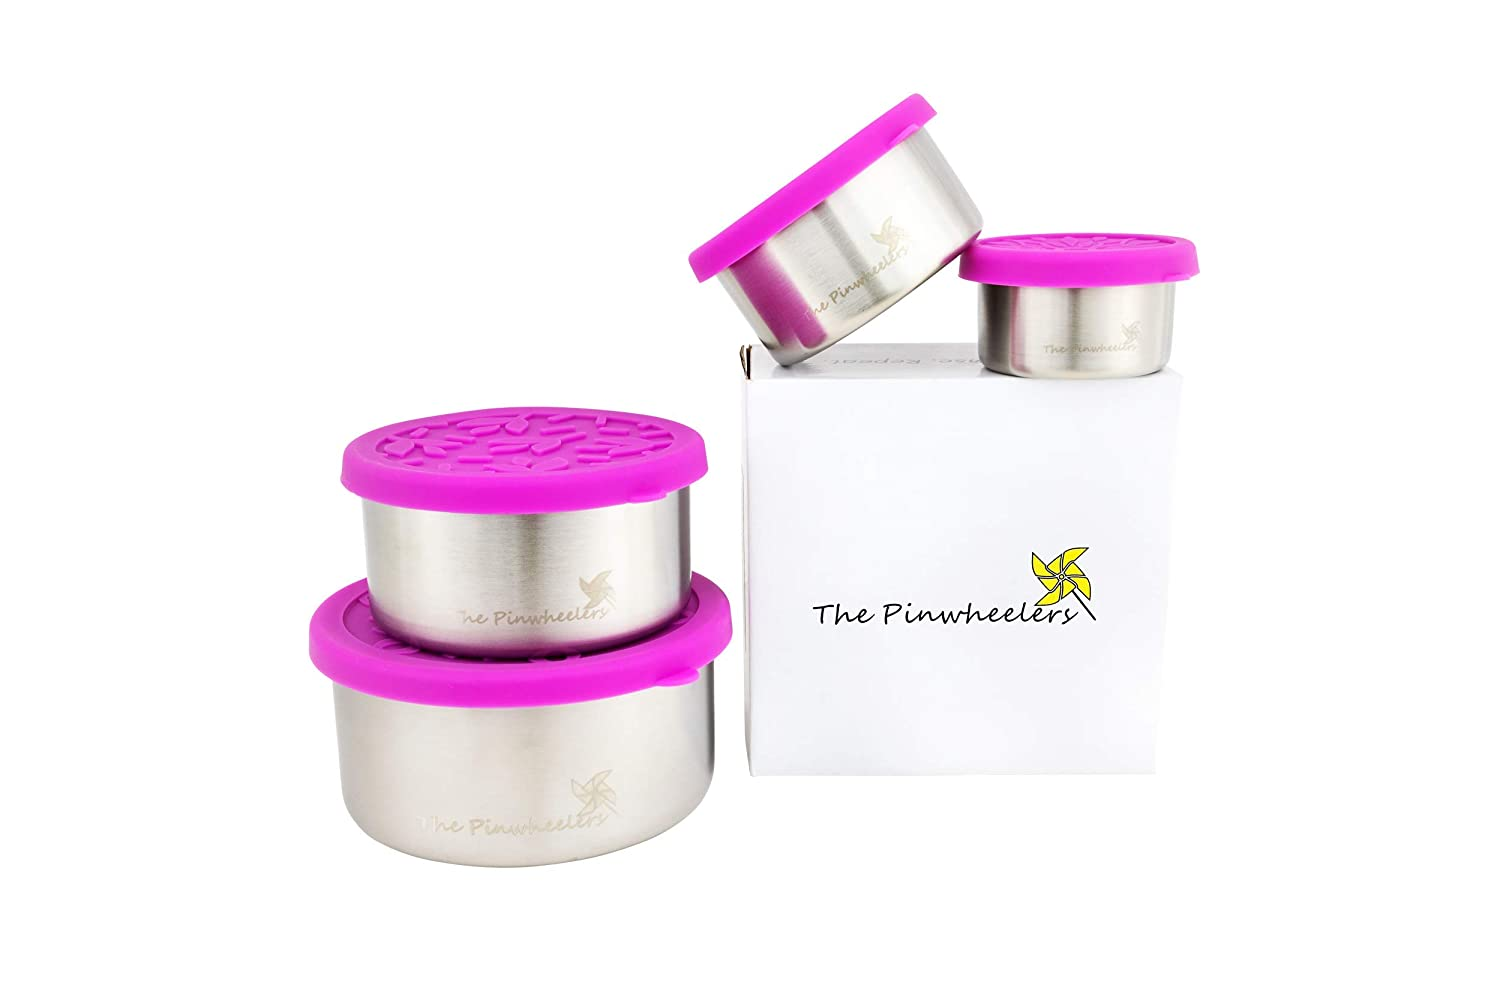 The Pinwheelers Nestable Quad | Stackable Stainless Steel Food Storage Containers | Set of 4 with 100% Leakproof Silicone Lids | Portable, Reusable, EcoFriendly, Plastic Free